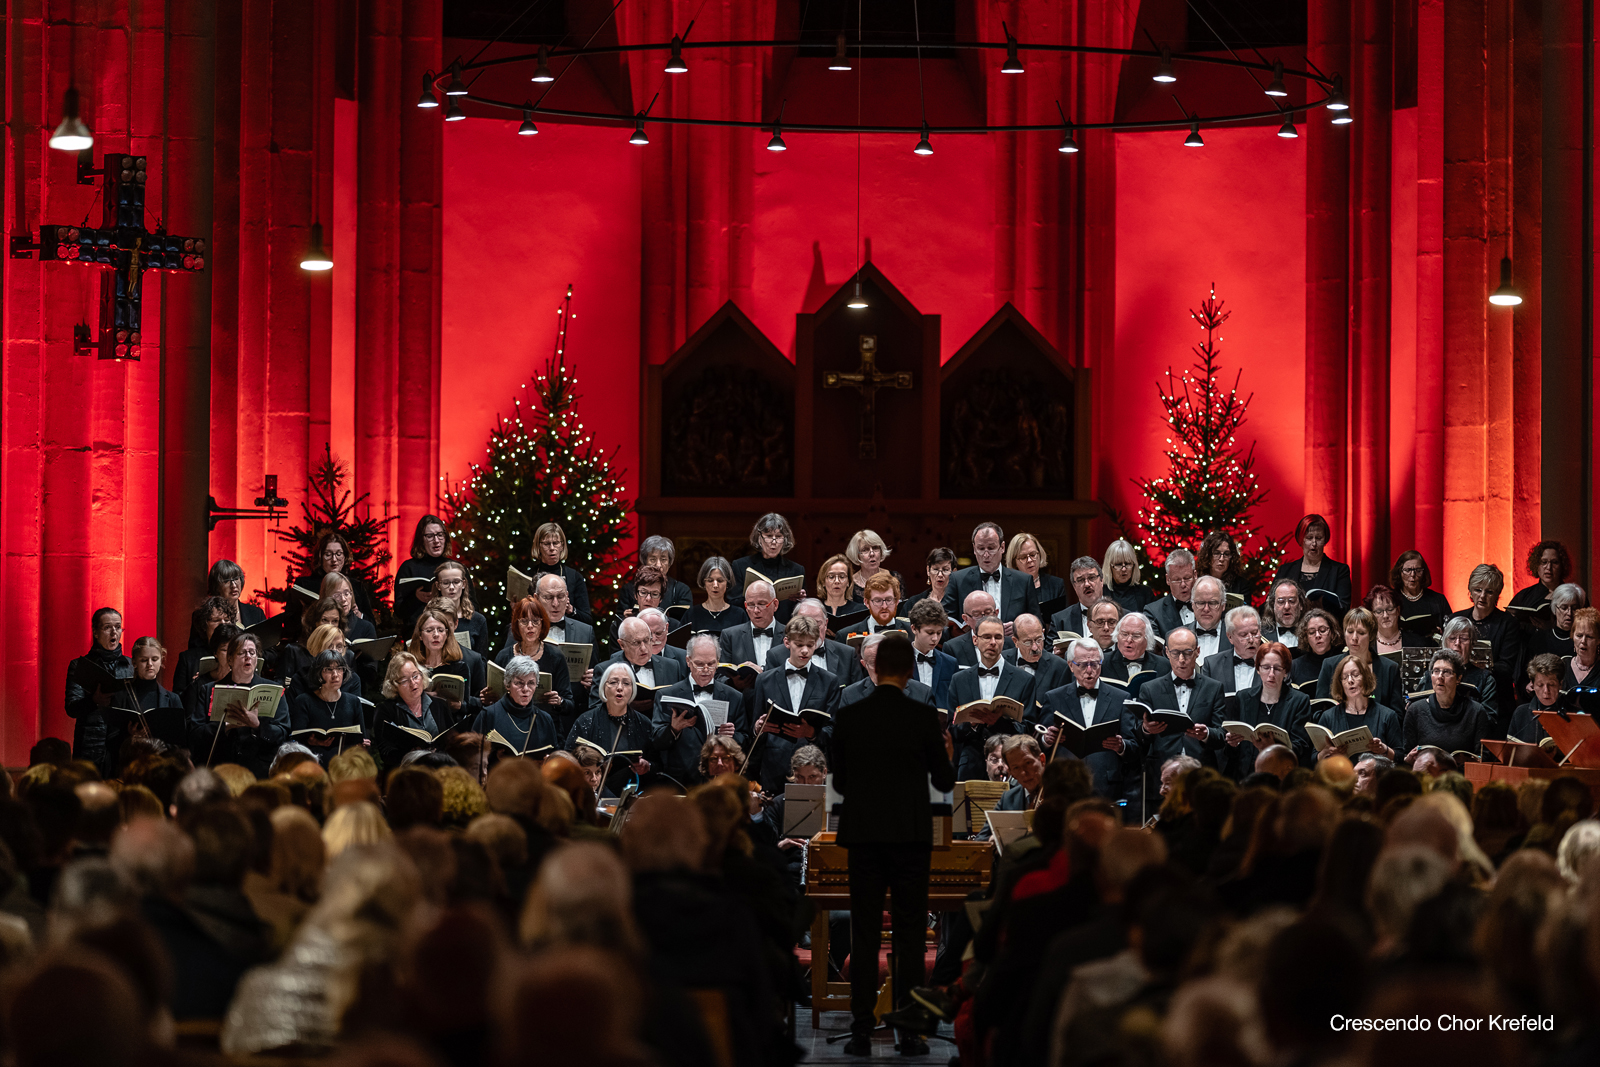 12_20191222_Crescendo_Chor_Krefeld_Messiah_024